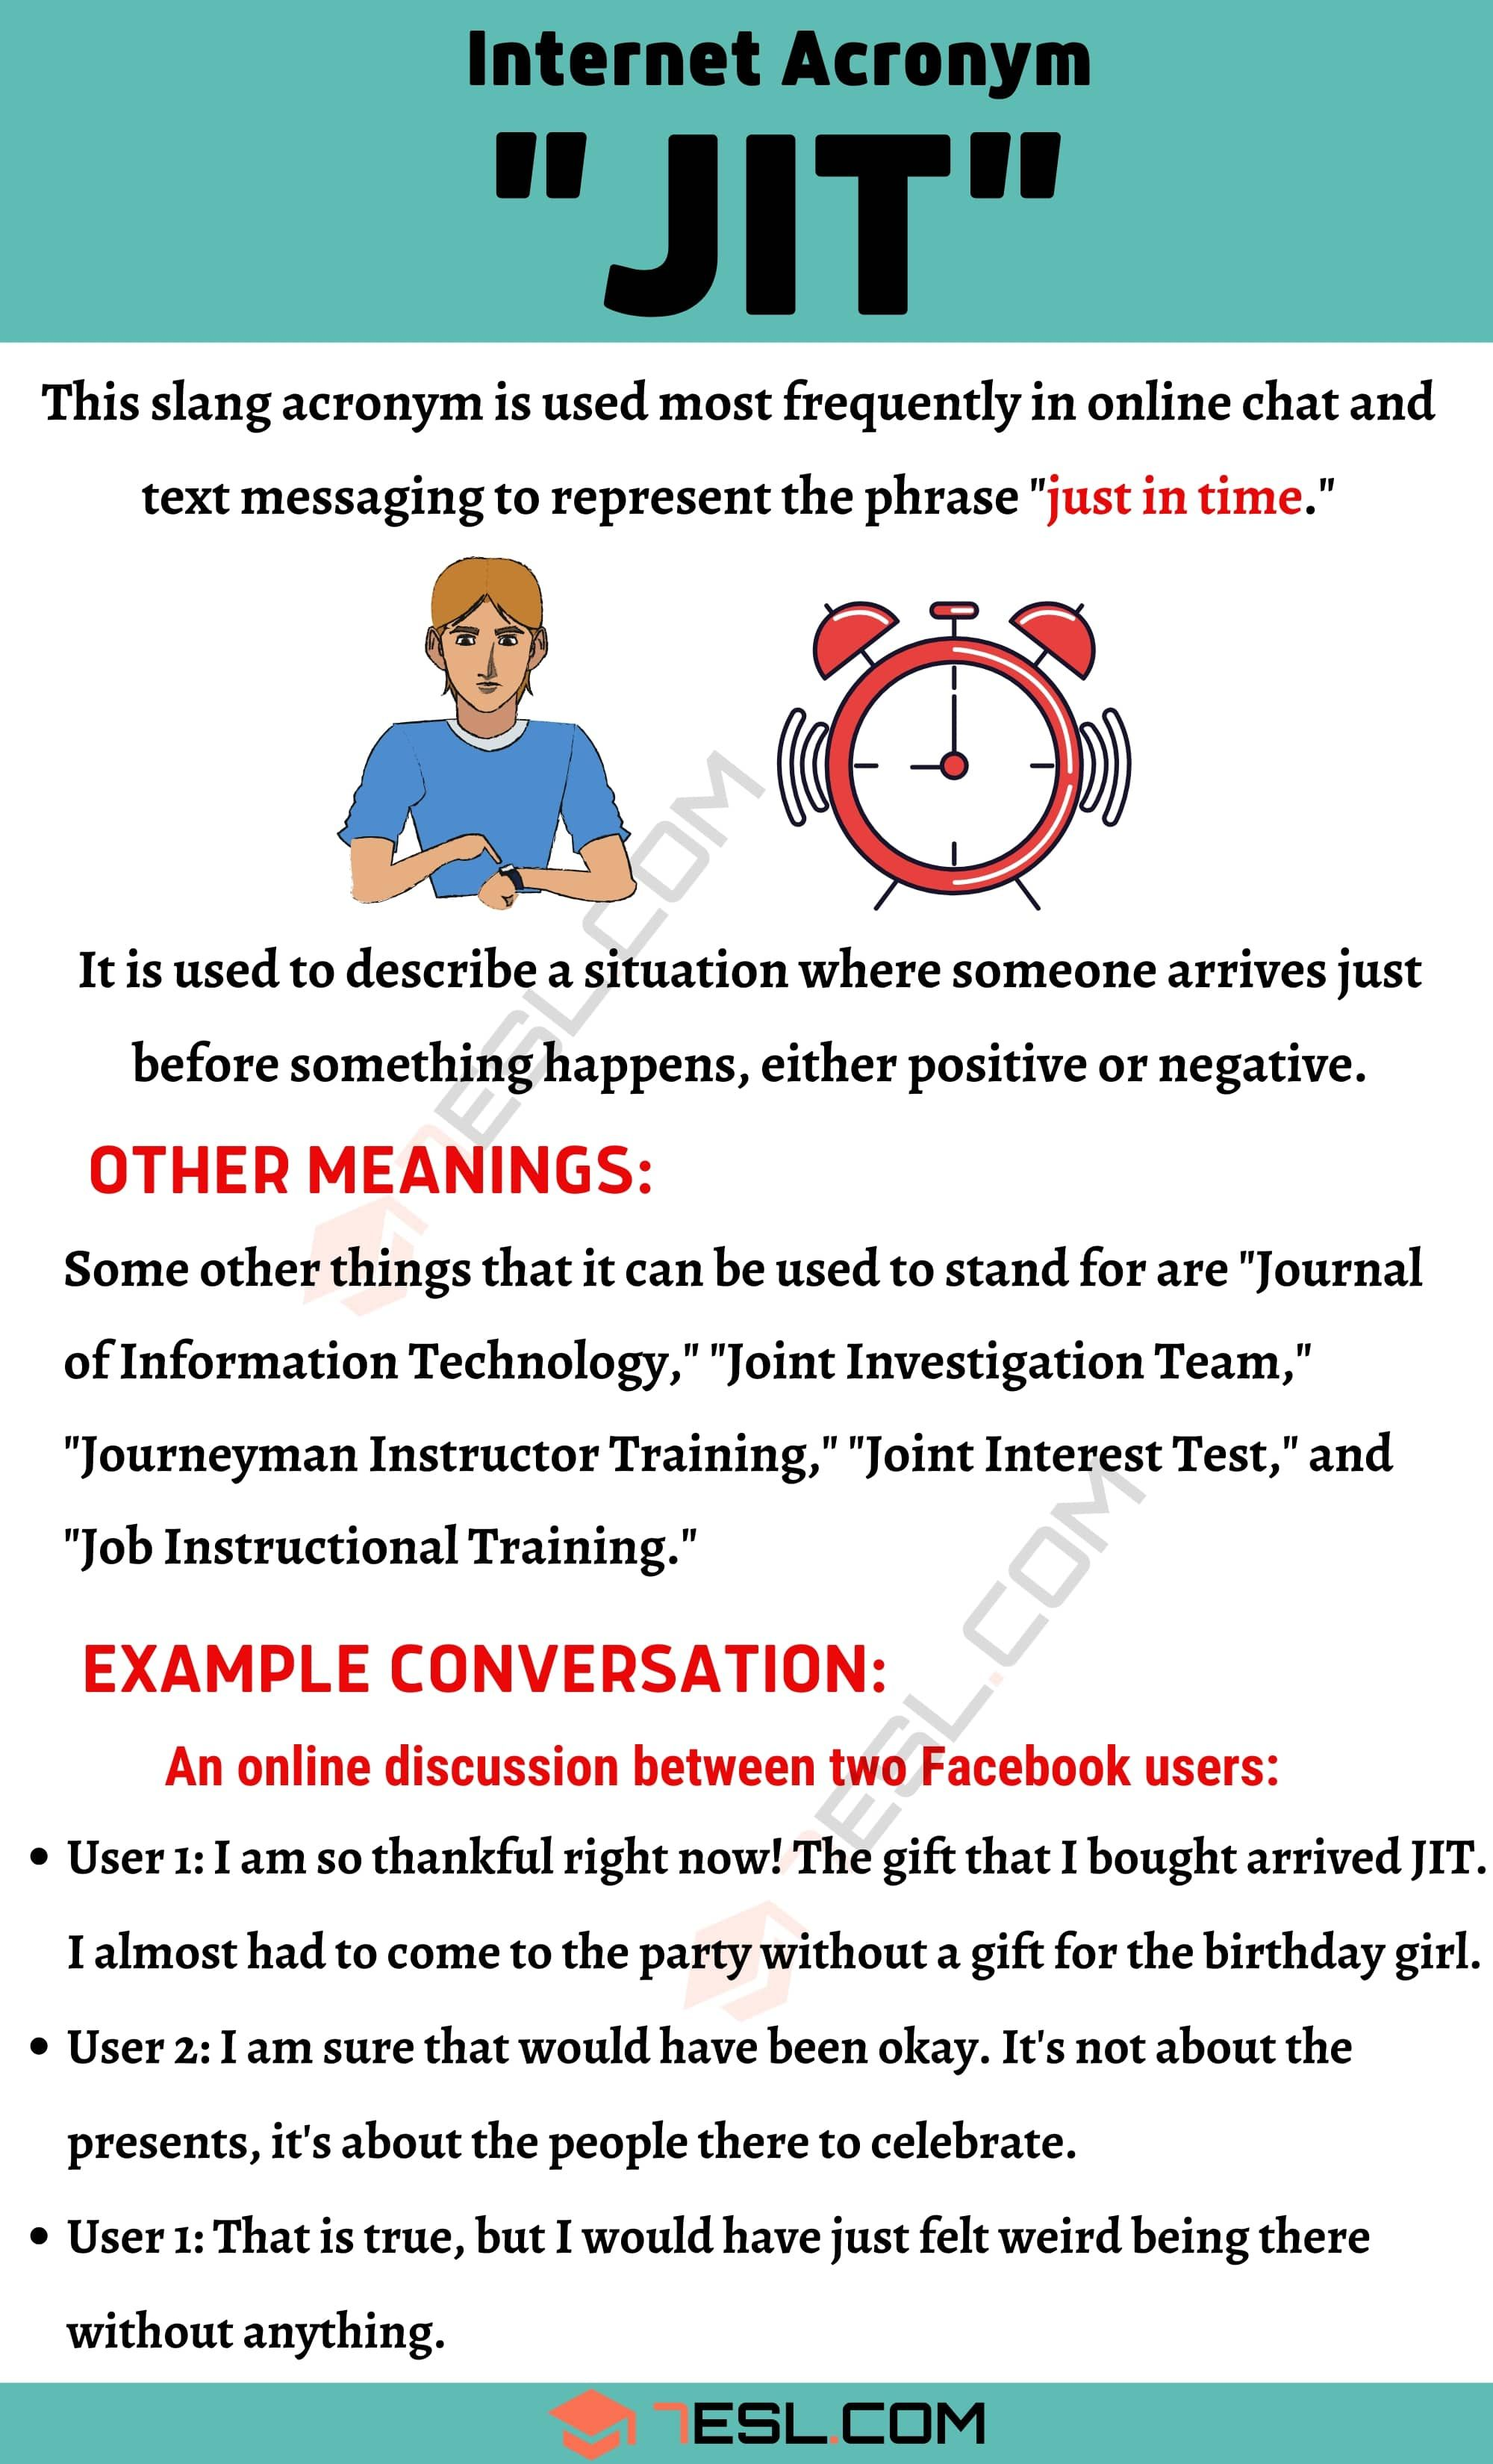 Jit Meaning How To Use The Internet Acronym Jit Correctly 7esl Sms Language Meant To Be How To Pronounce